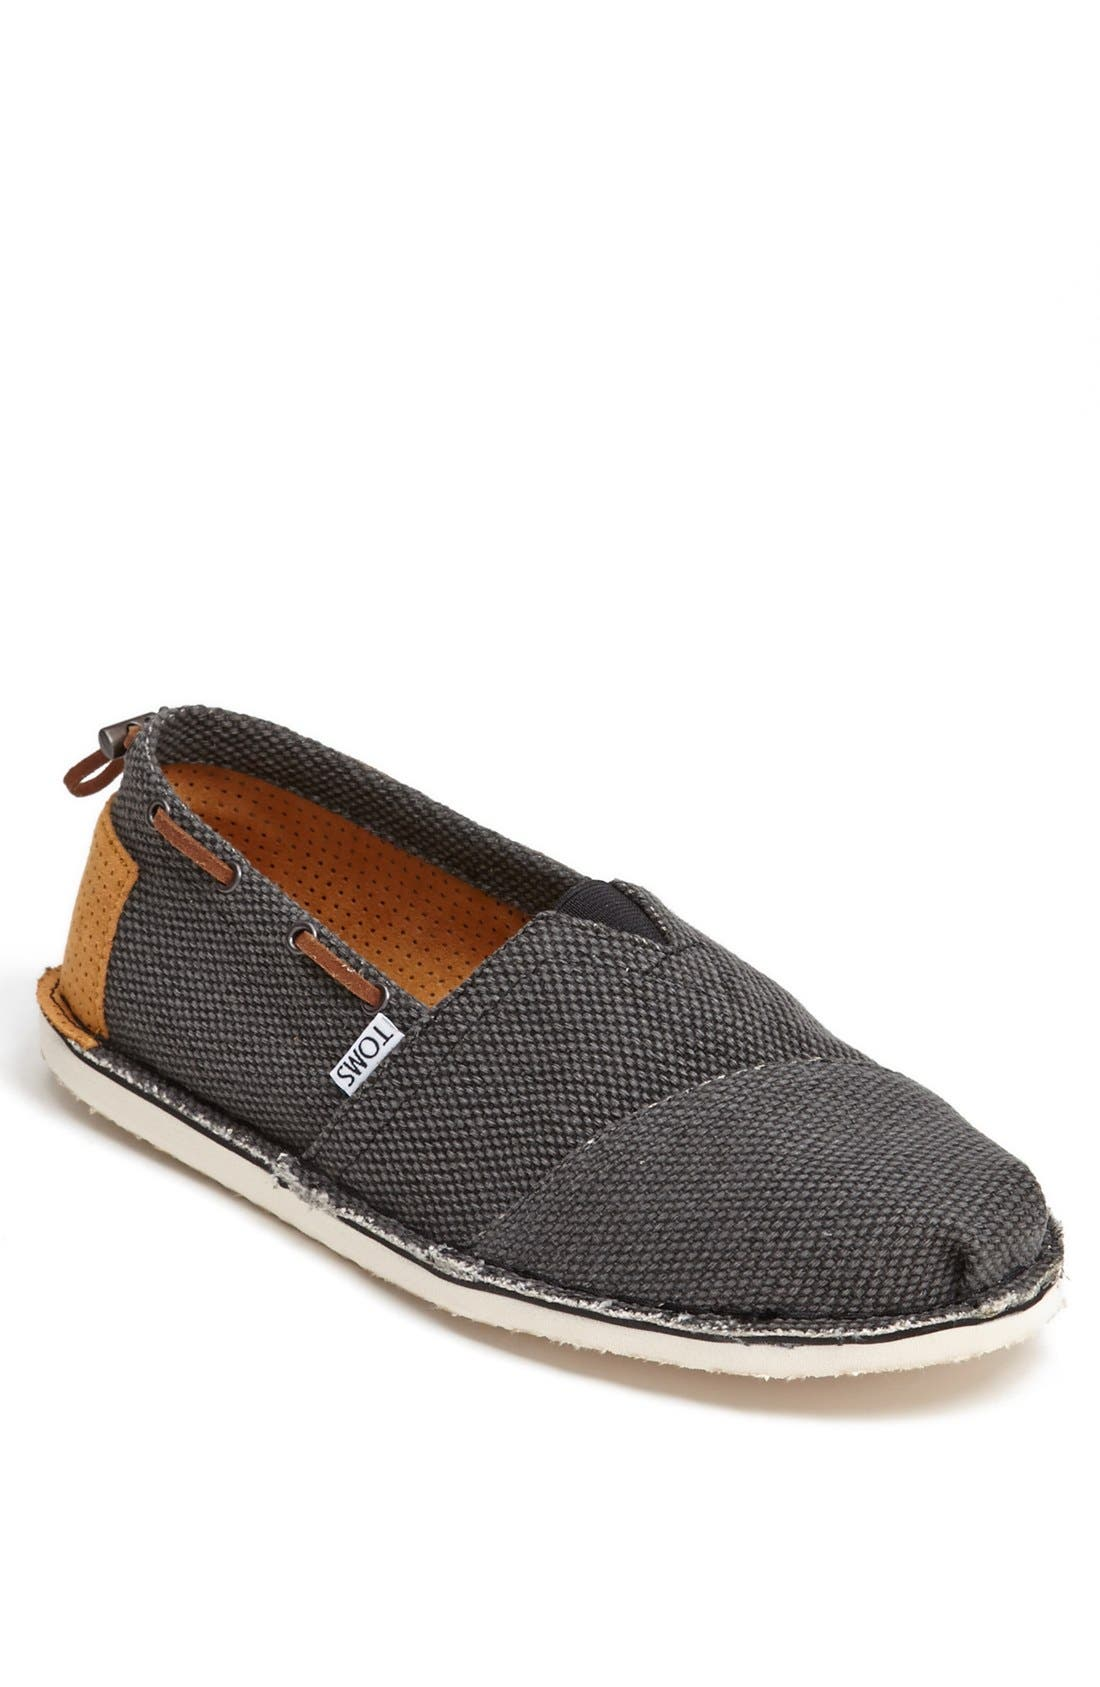 Alternate Image 1 Selected - TOMS 'Bimini - Stitchout' Slip-On (Men)